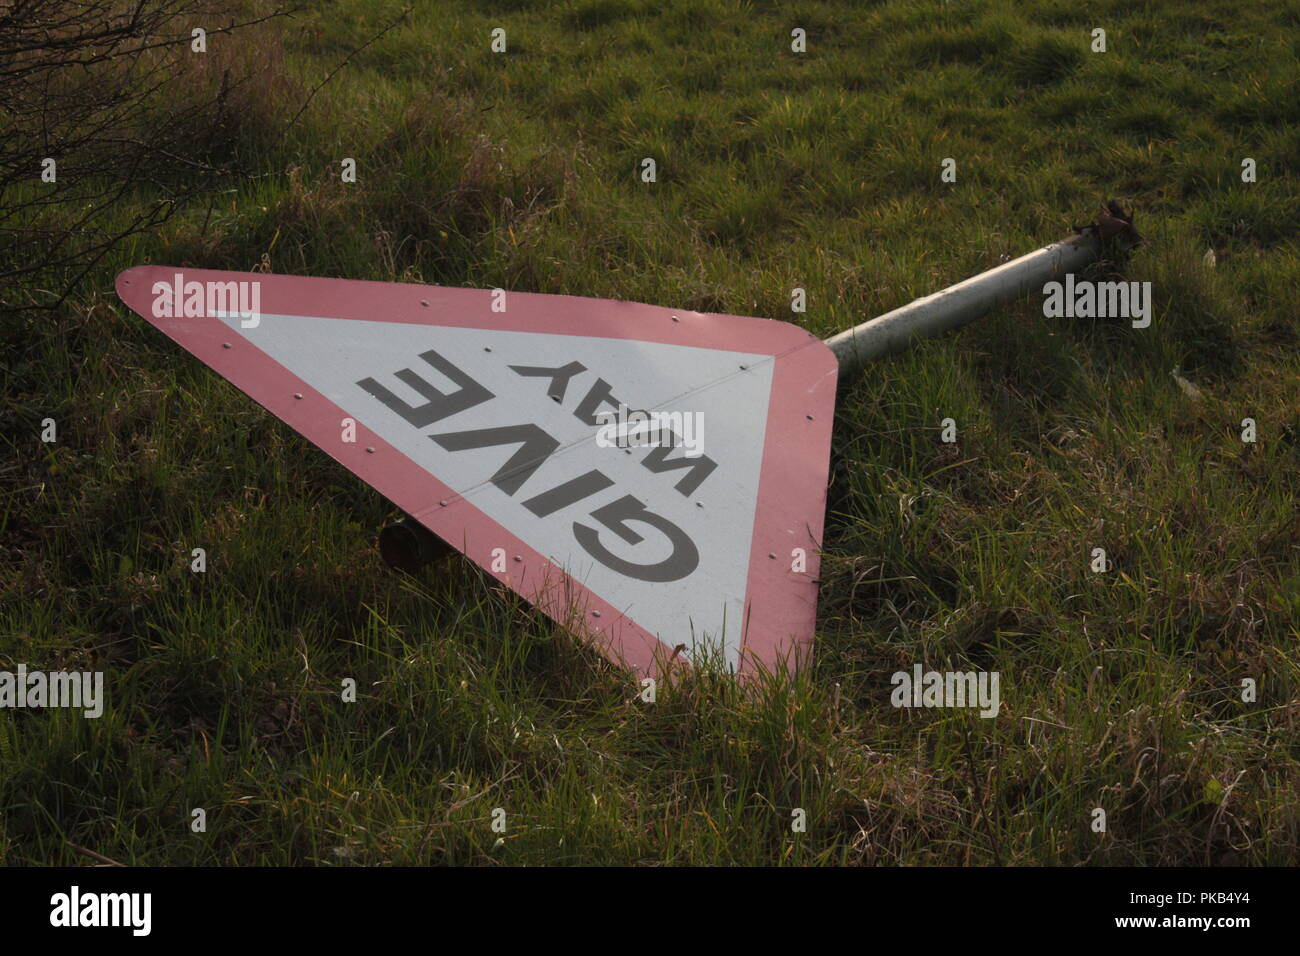 fallen road sign - Stock Image